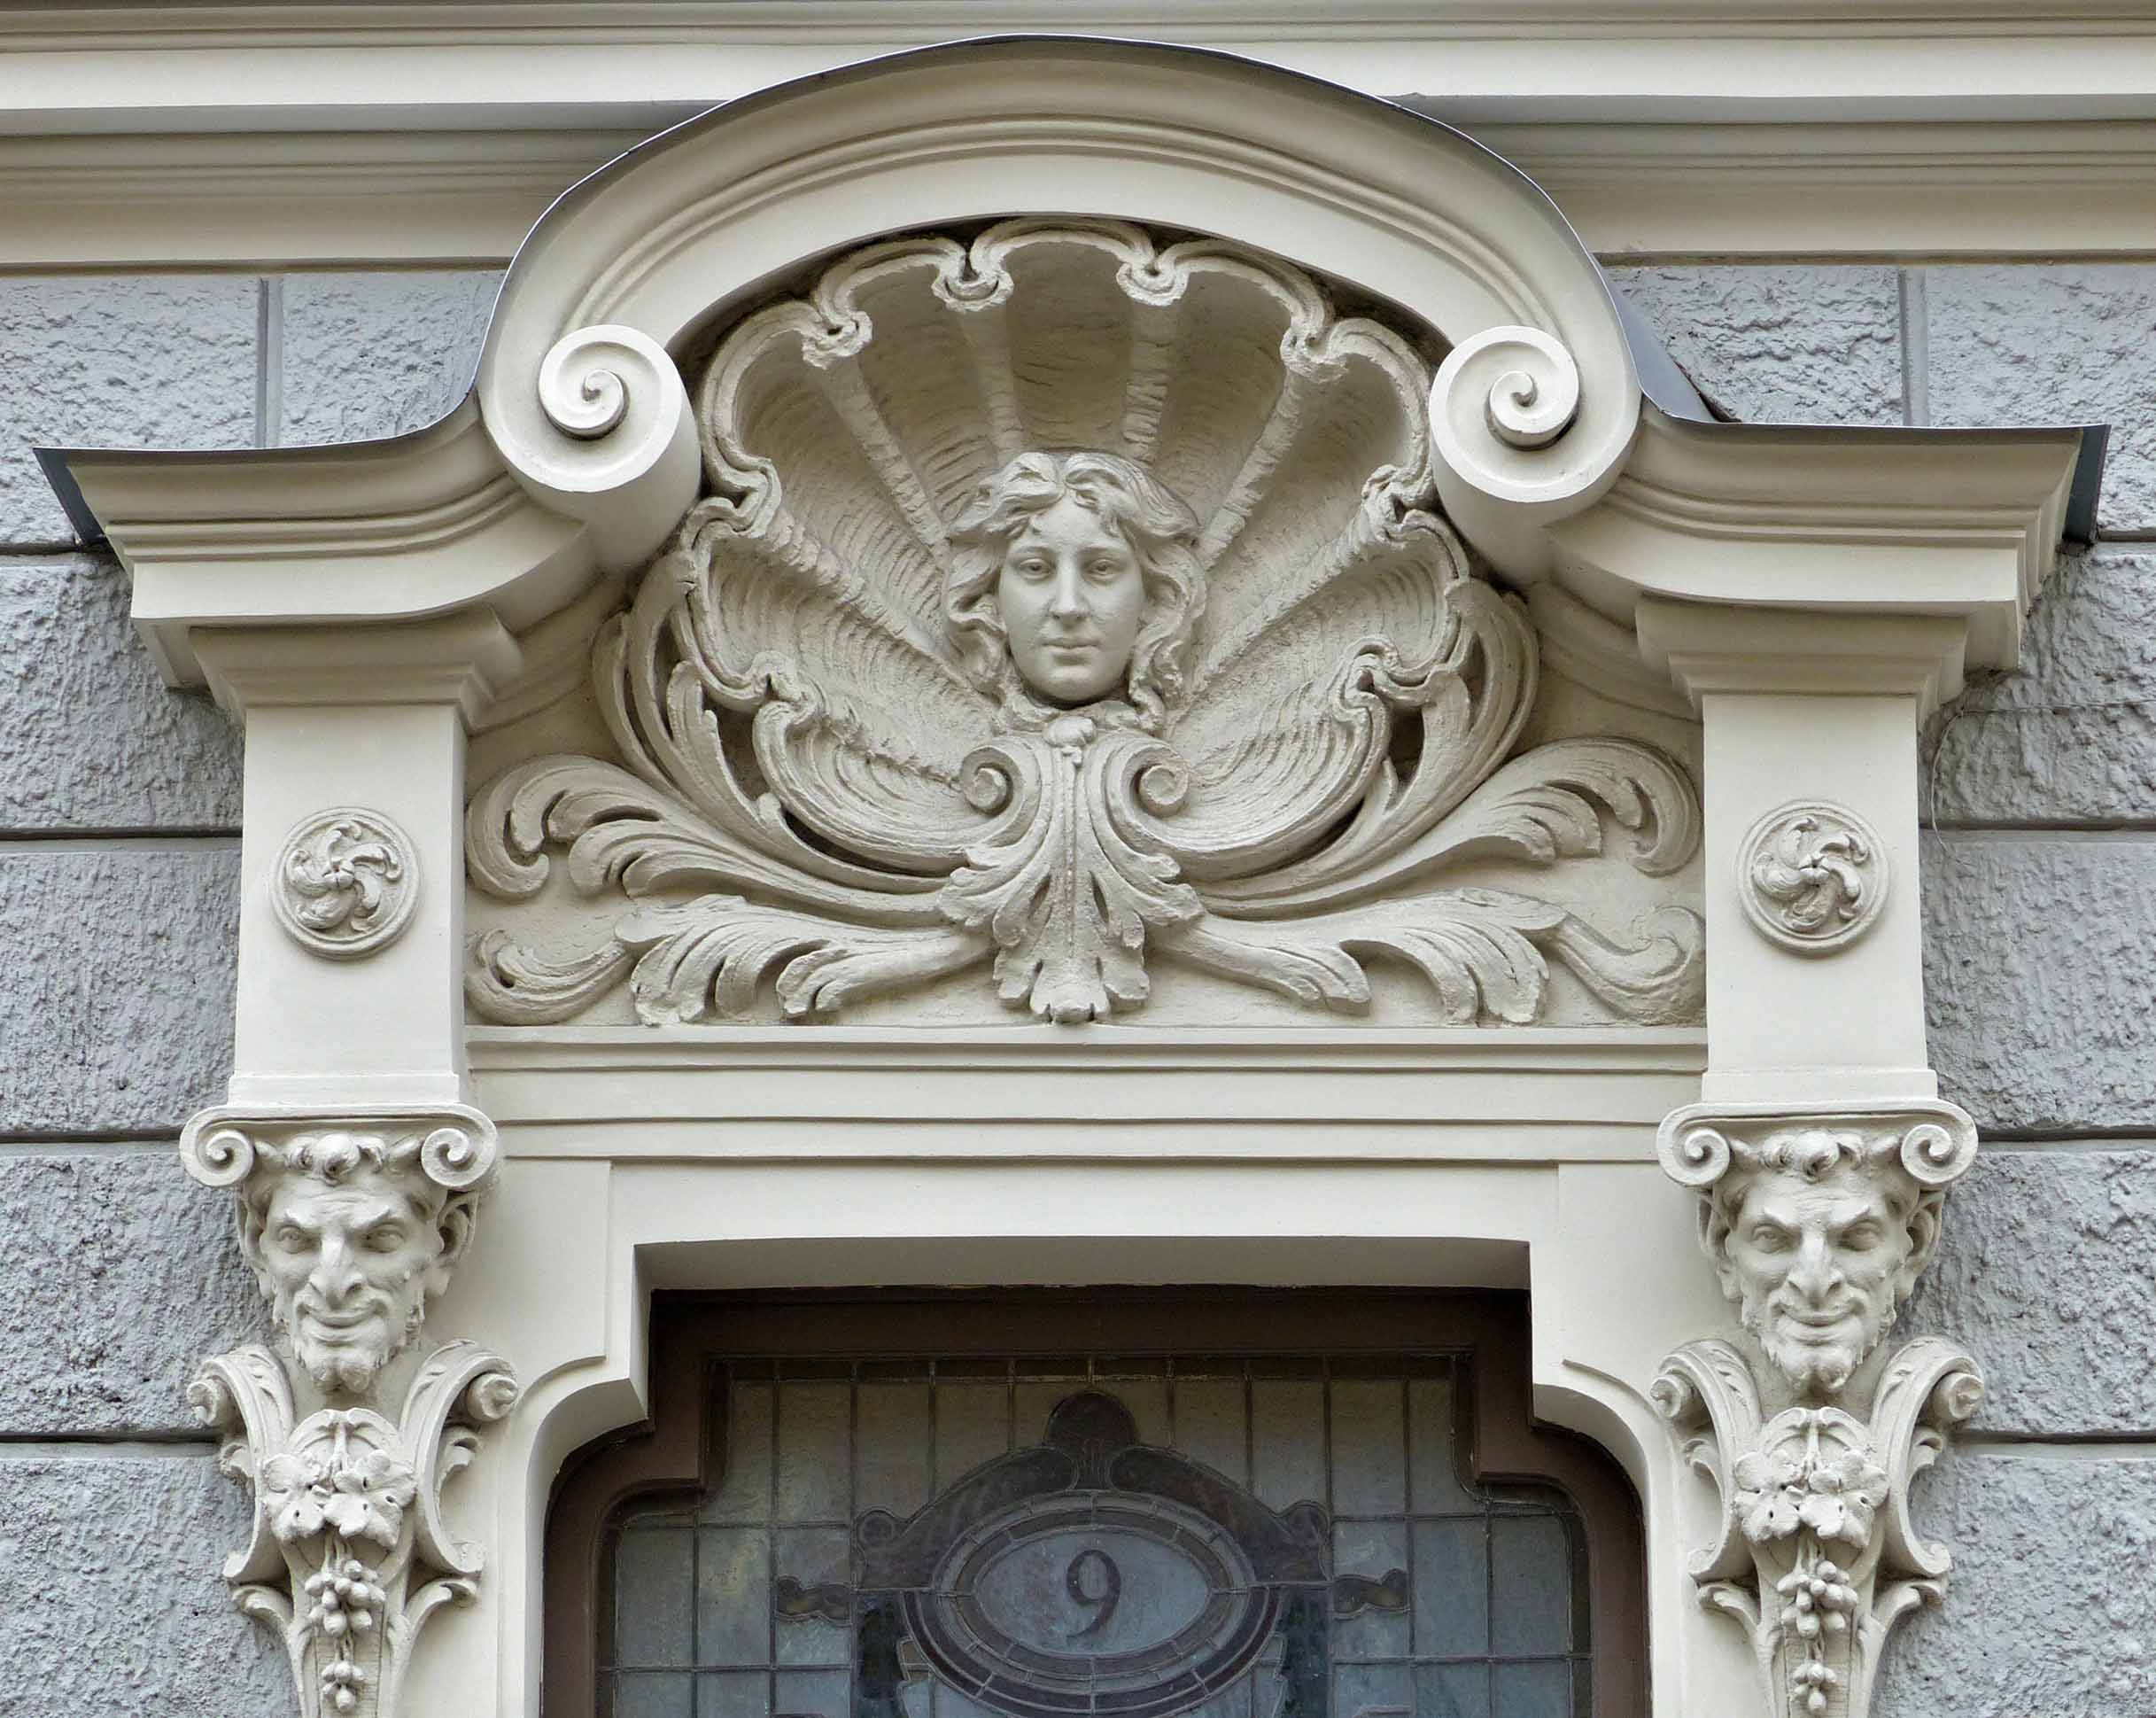 Ornate carving around a door